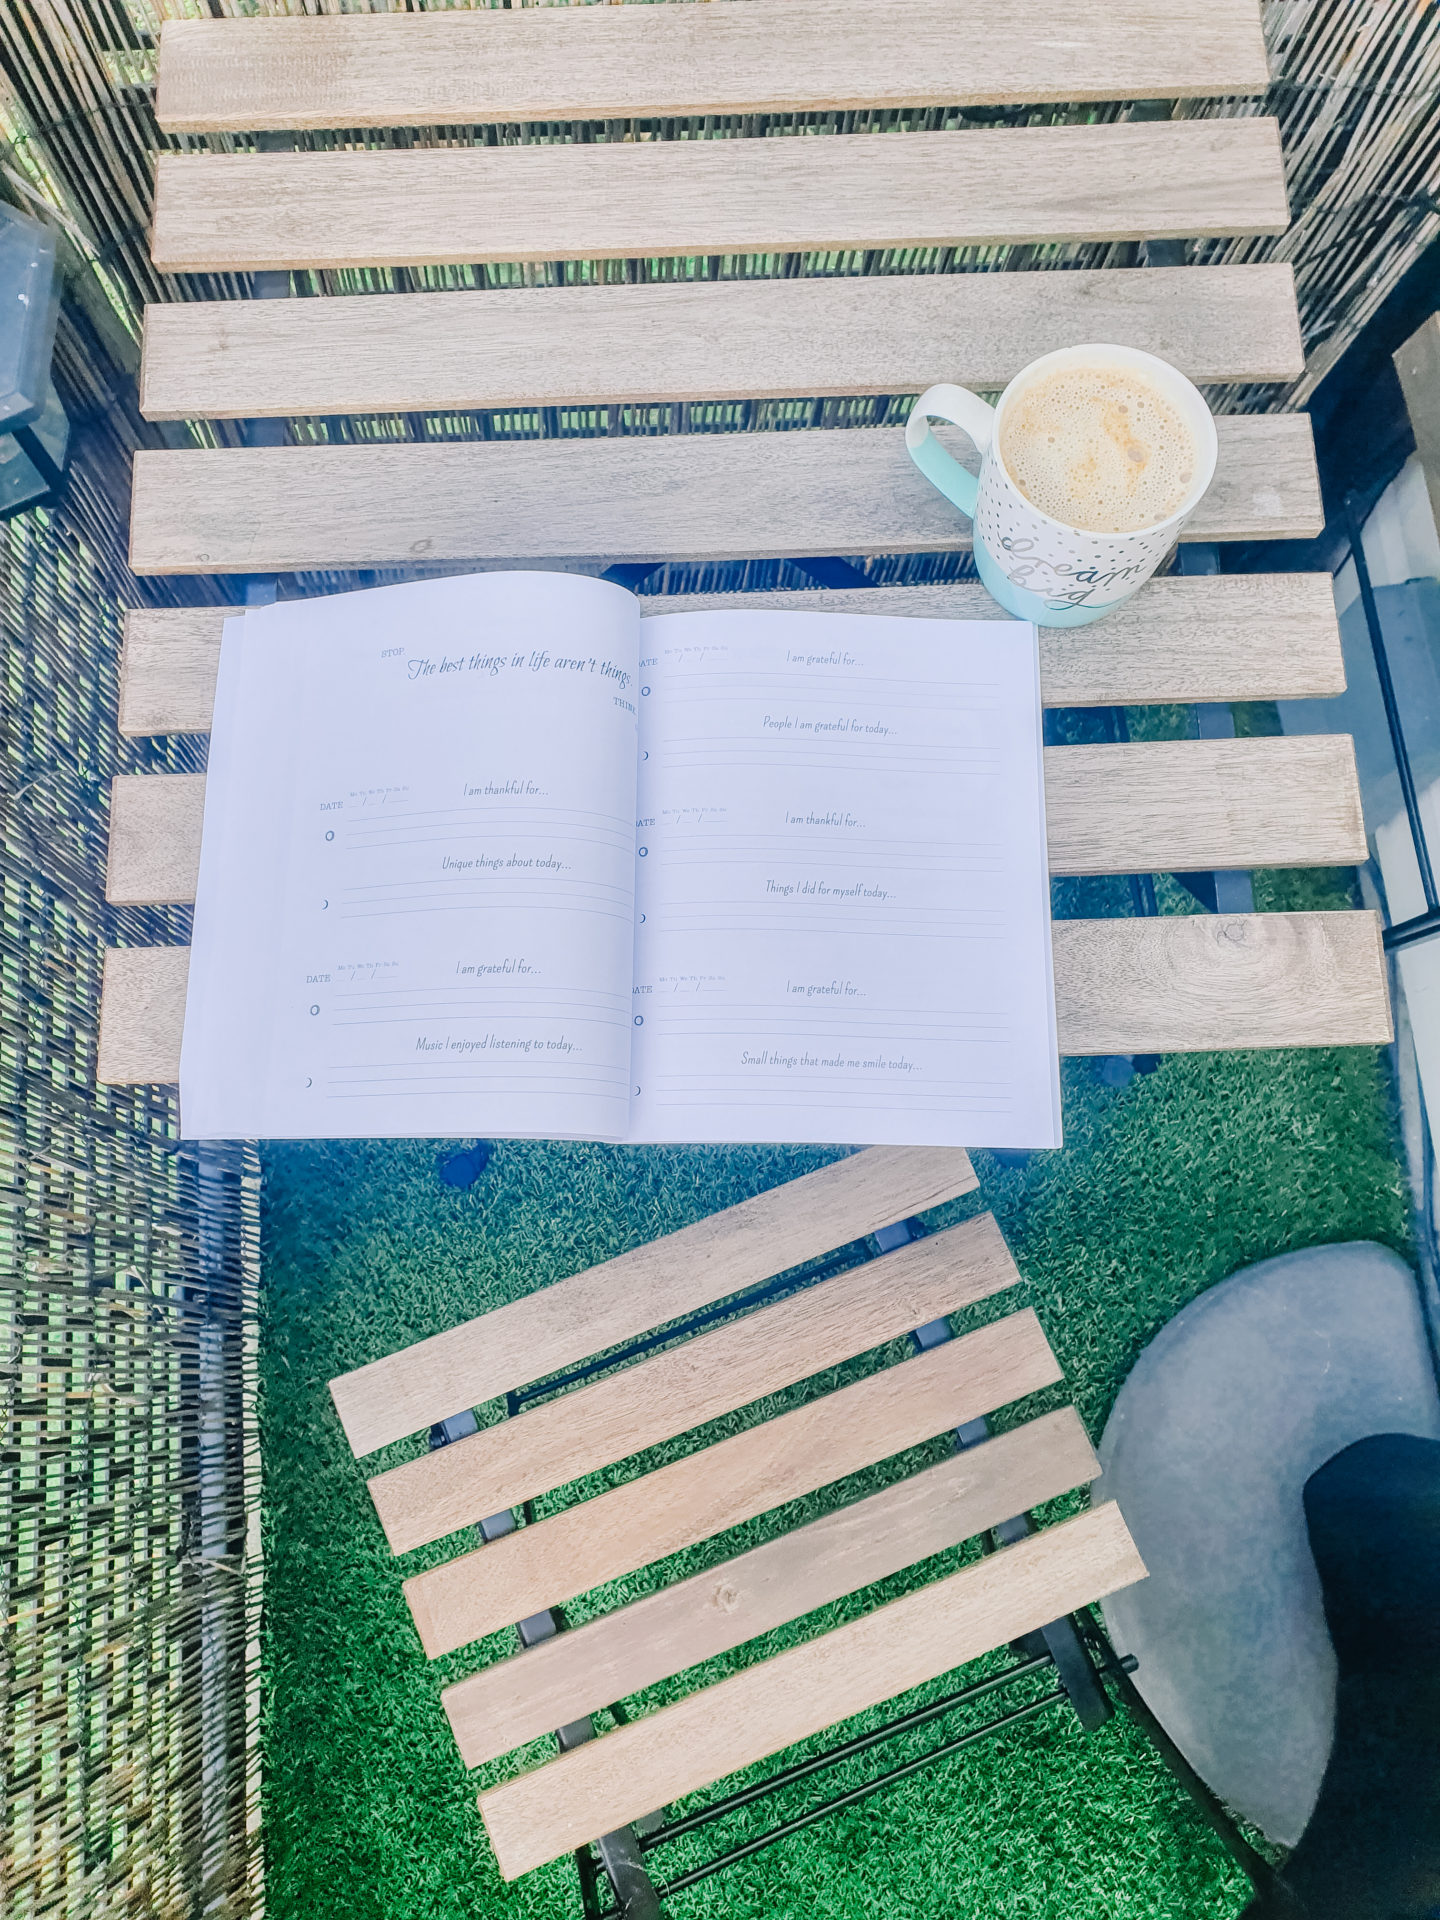 book on the table with some coffee